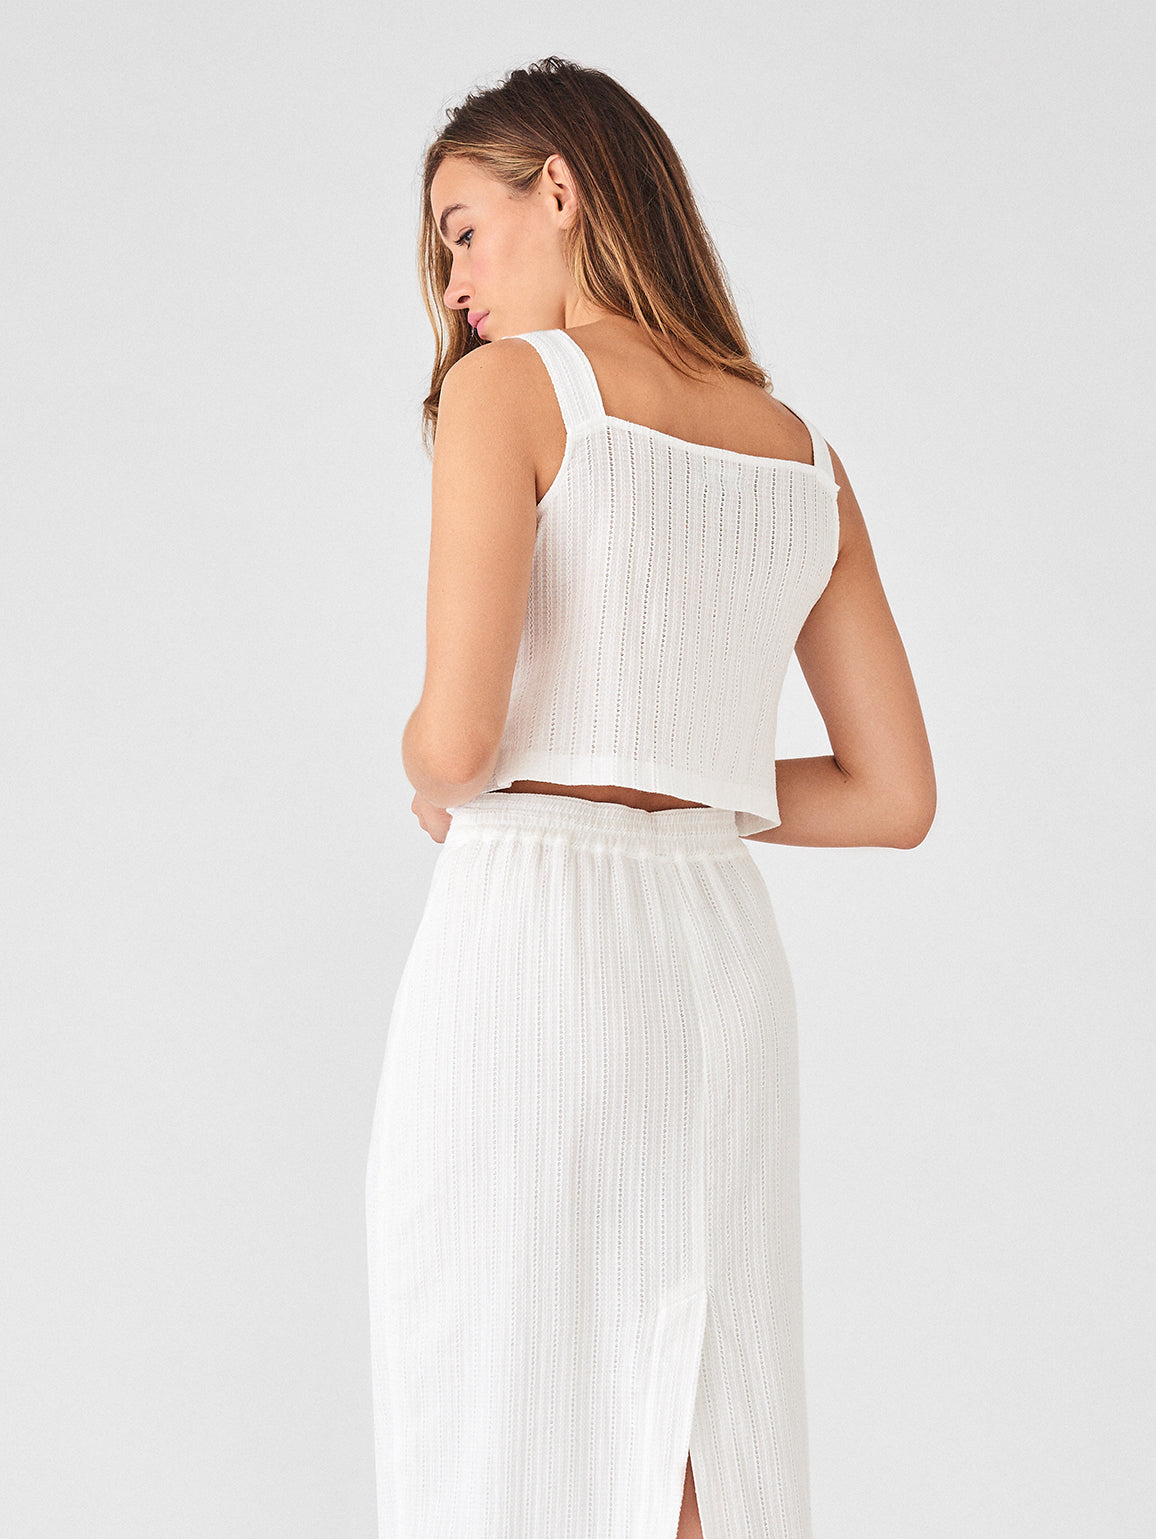 Park Place Top | White Eyelet